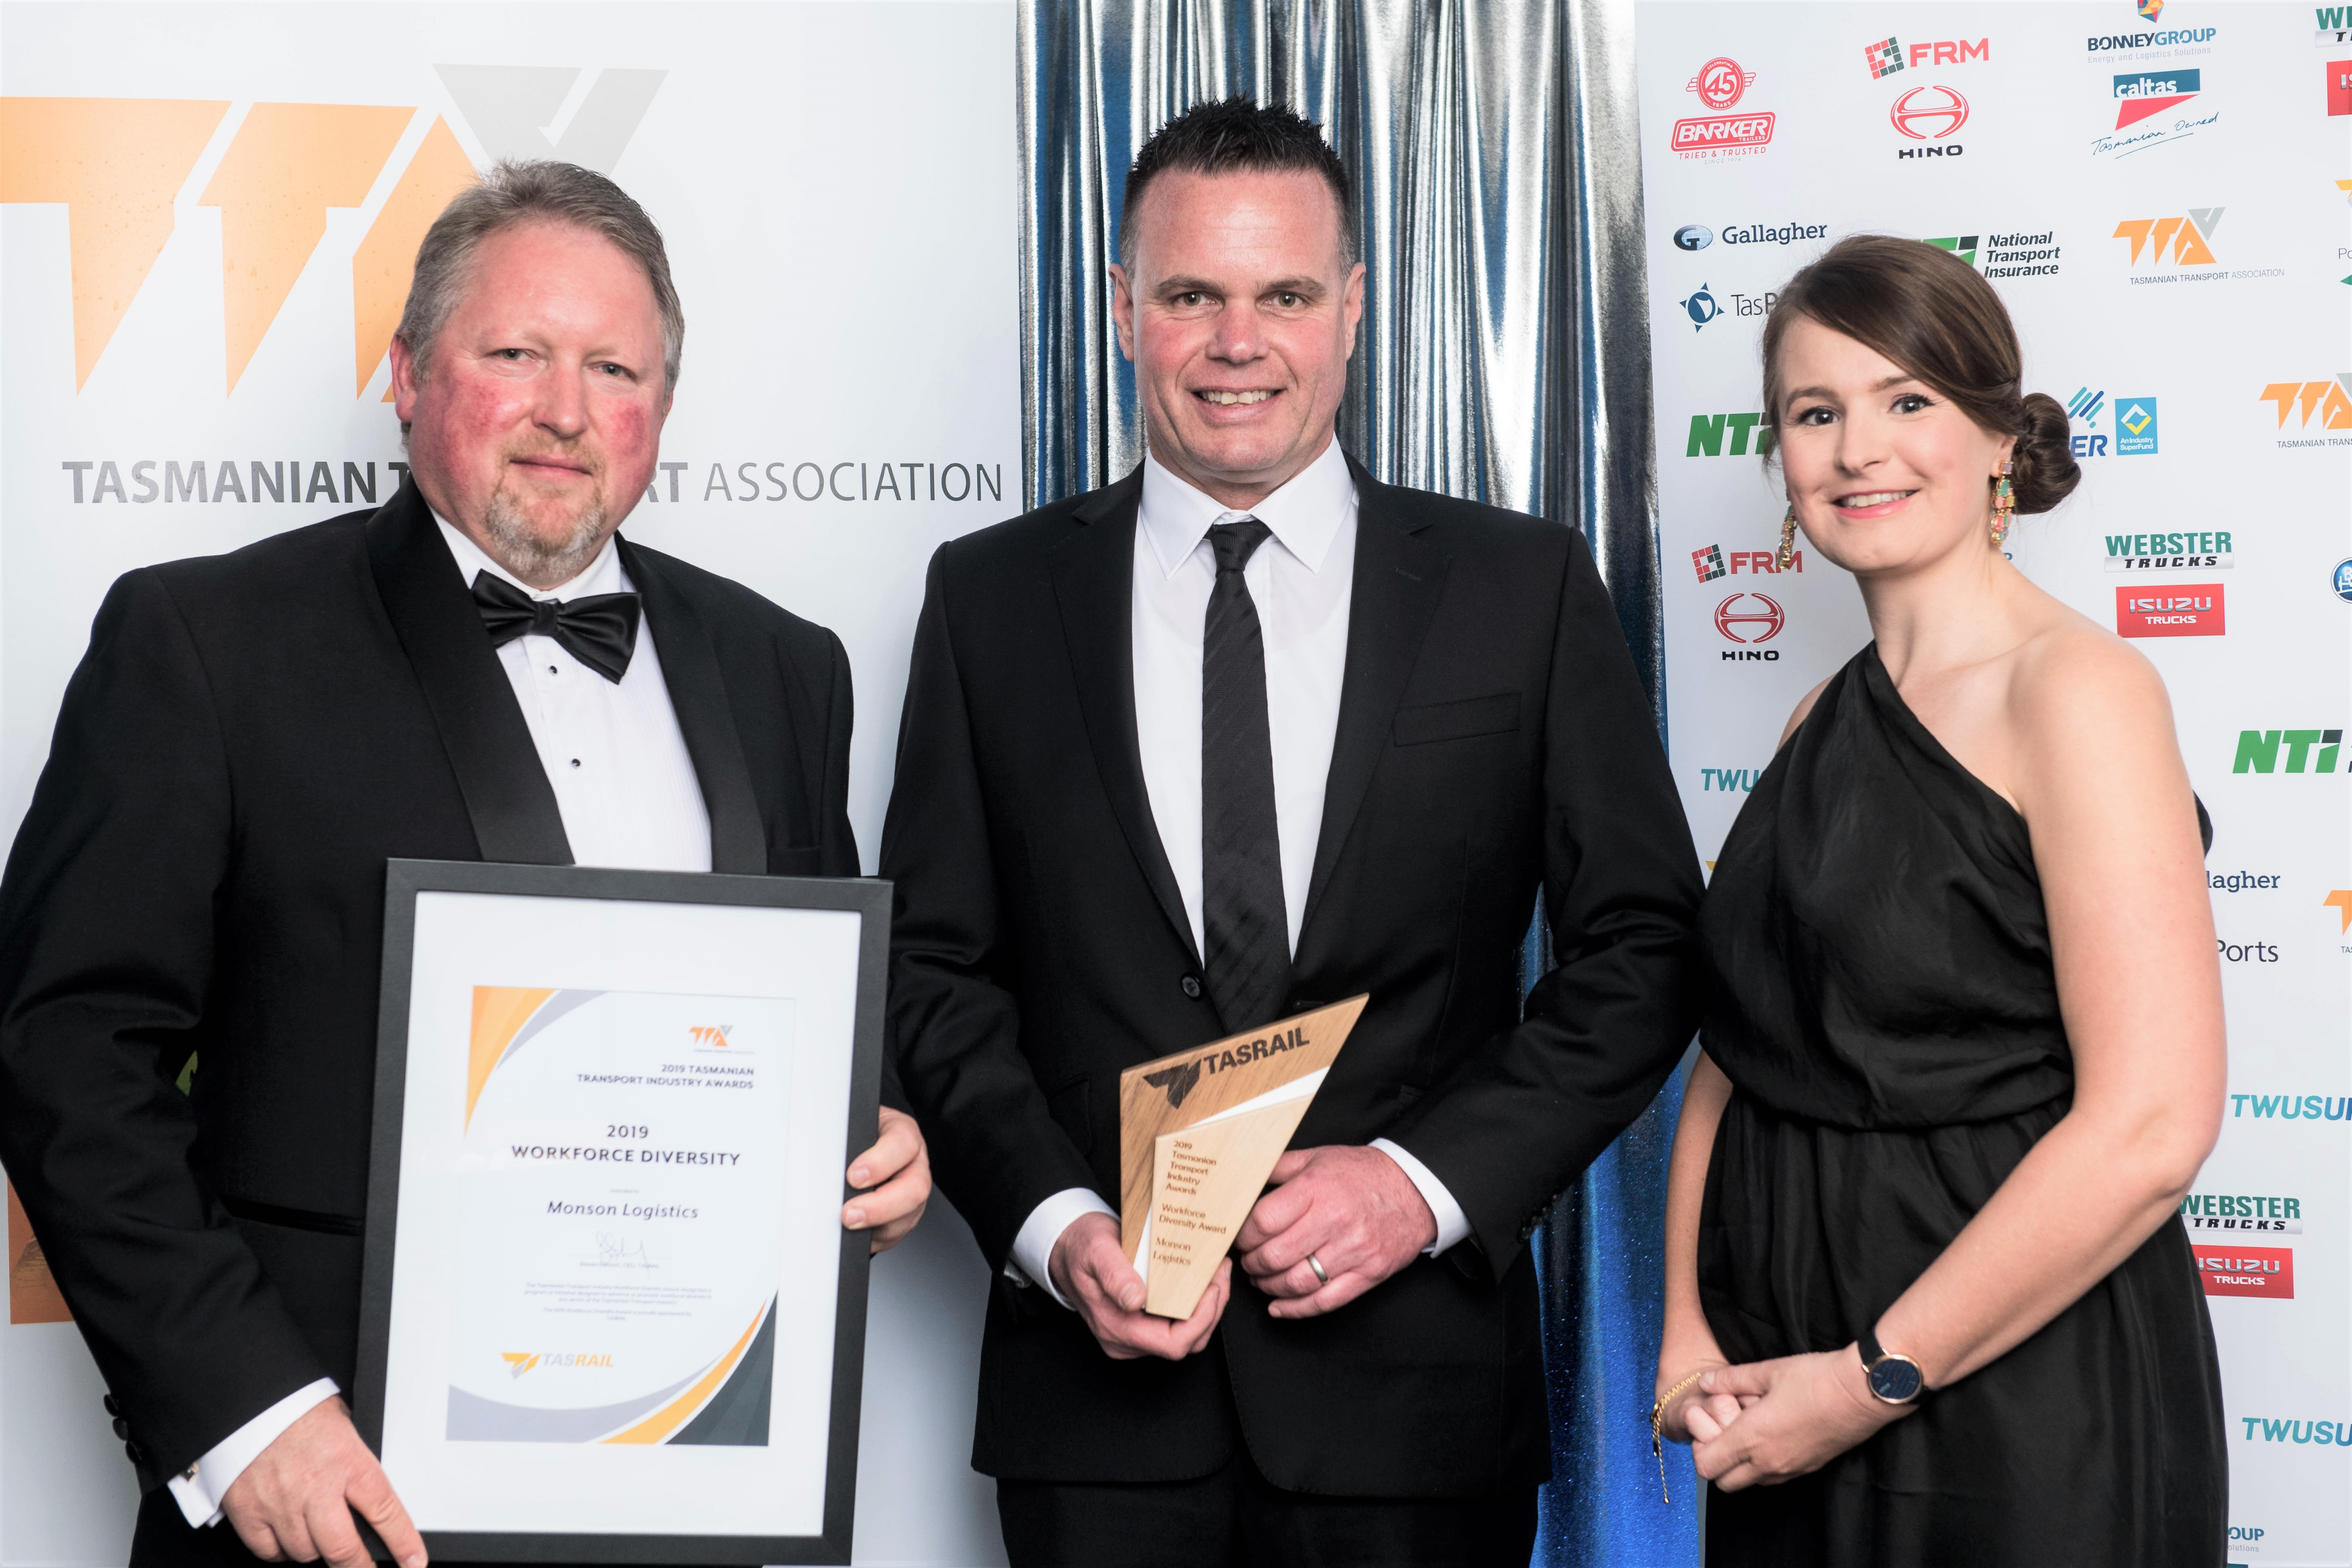 Steven Dietrich (TasRail), Darren Young (Monson Logistics) and Erin Mollinson (TasRail) present the 2019 TasRail Tasmanian Transport Industry Workforce Diversity Award to Monson Logistics